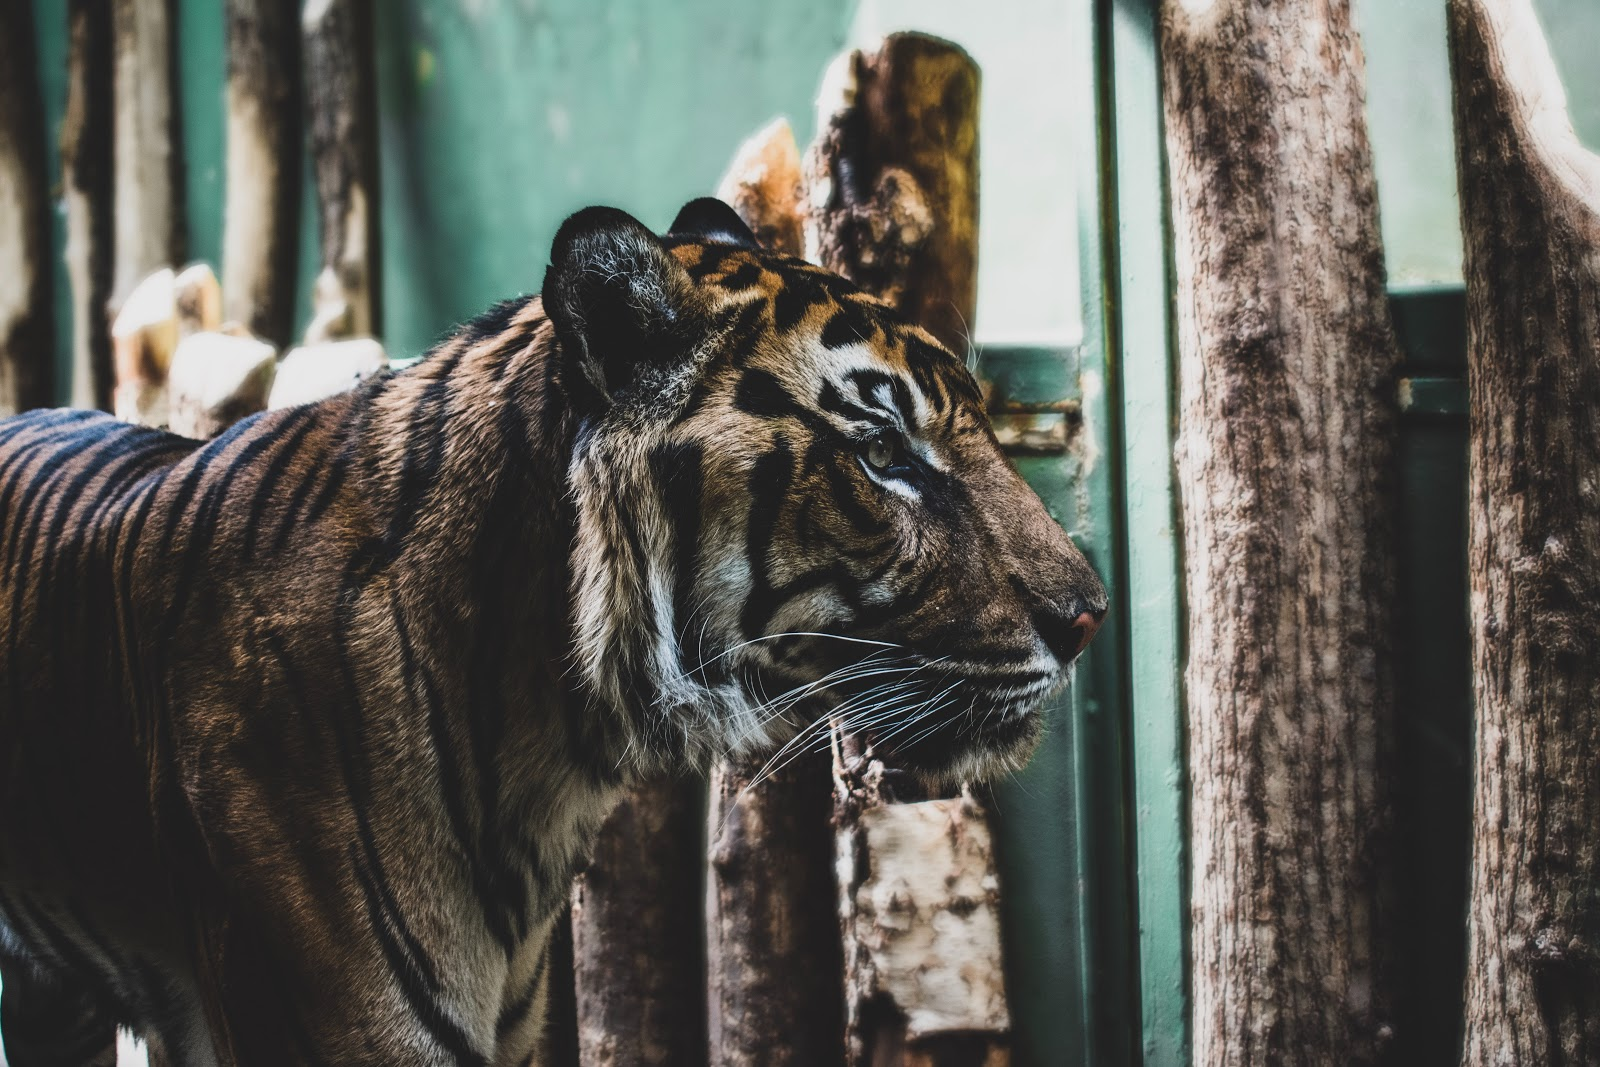 bengal-tiger-standing-near-wooden-logs-images